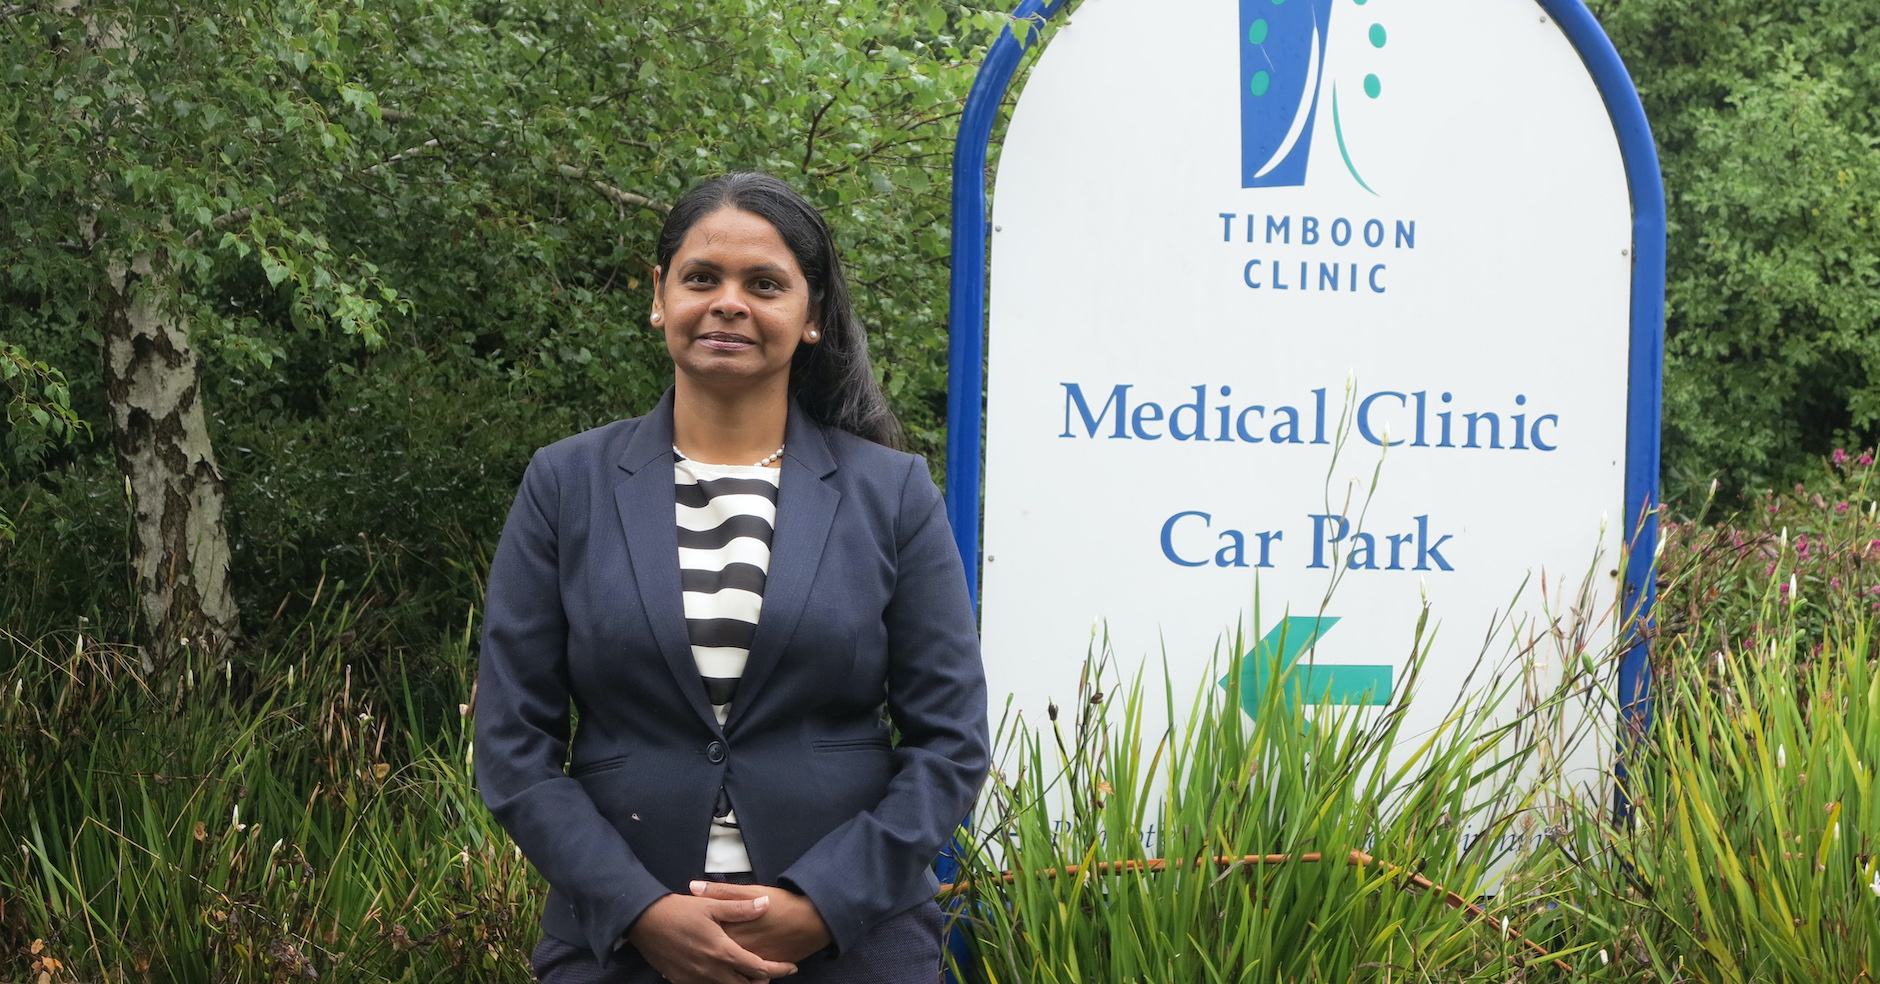 Dr Shashika Jayakody Timboon Clinic Jan 2021